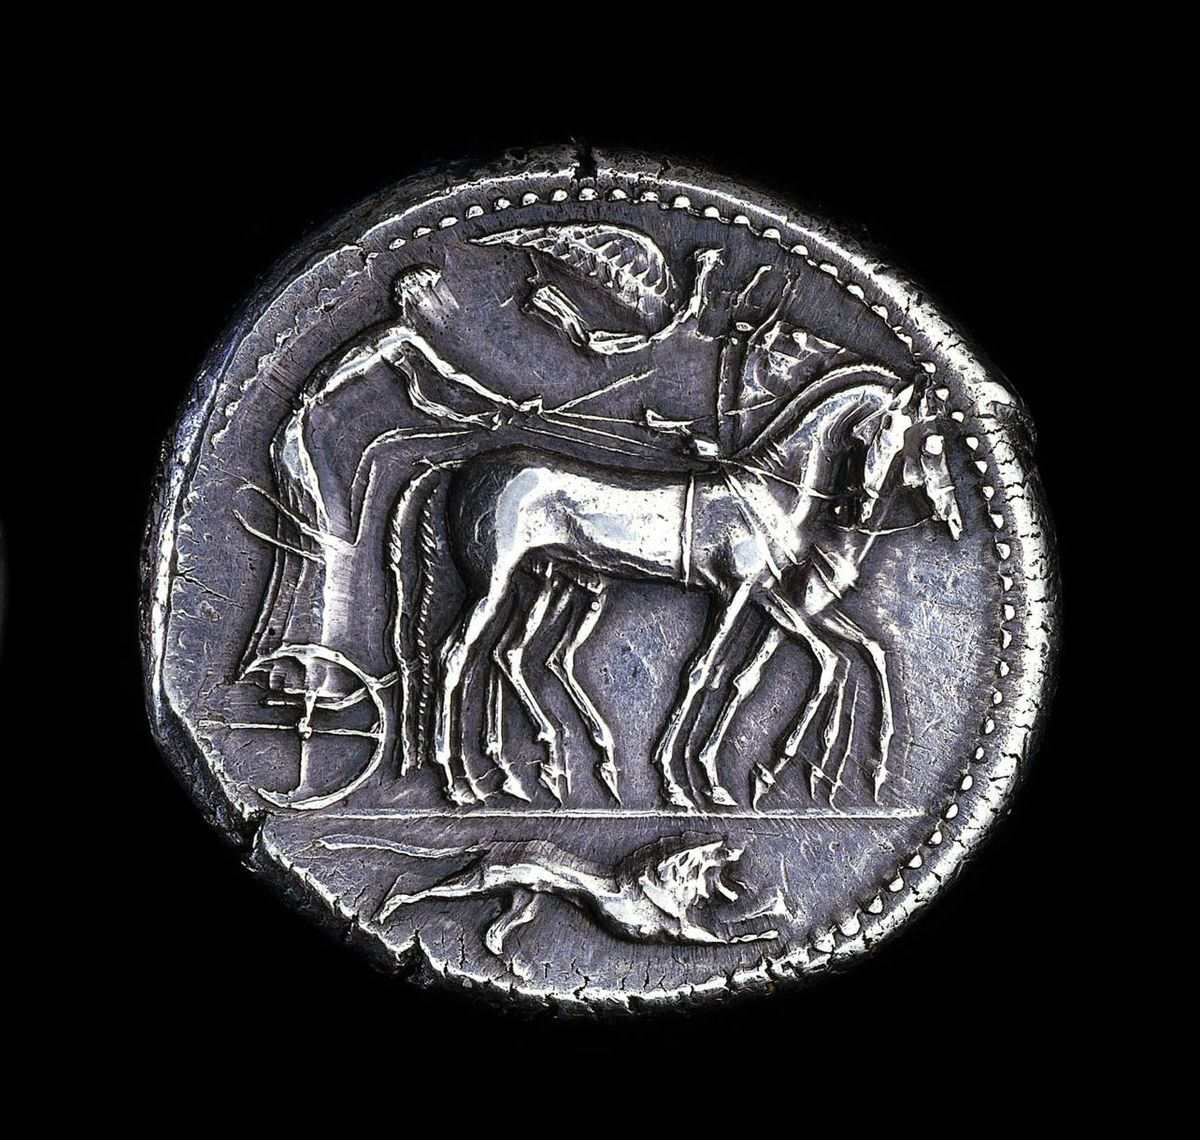 Silver coin from fifth century B.C. Syracuse